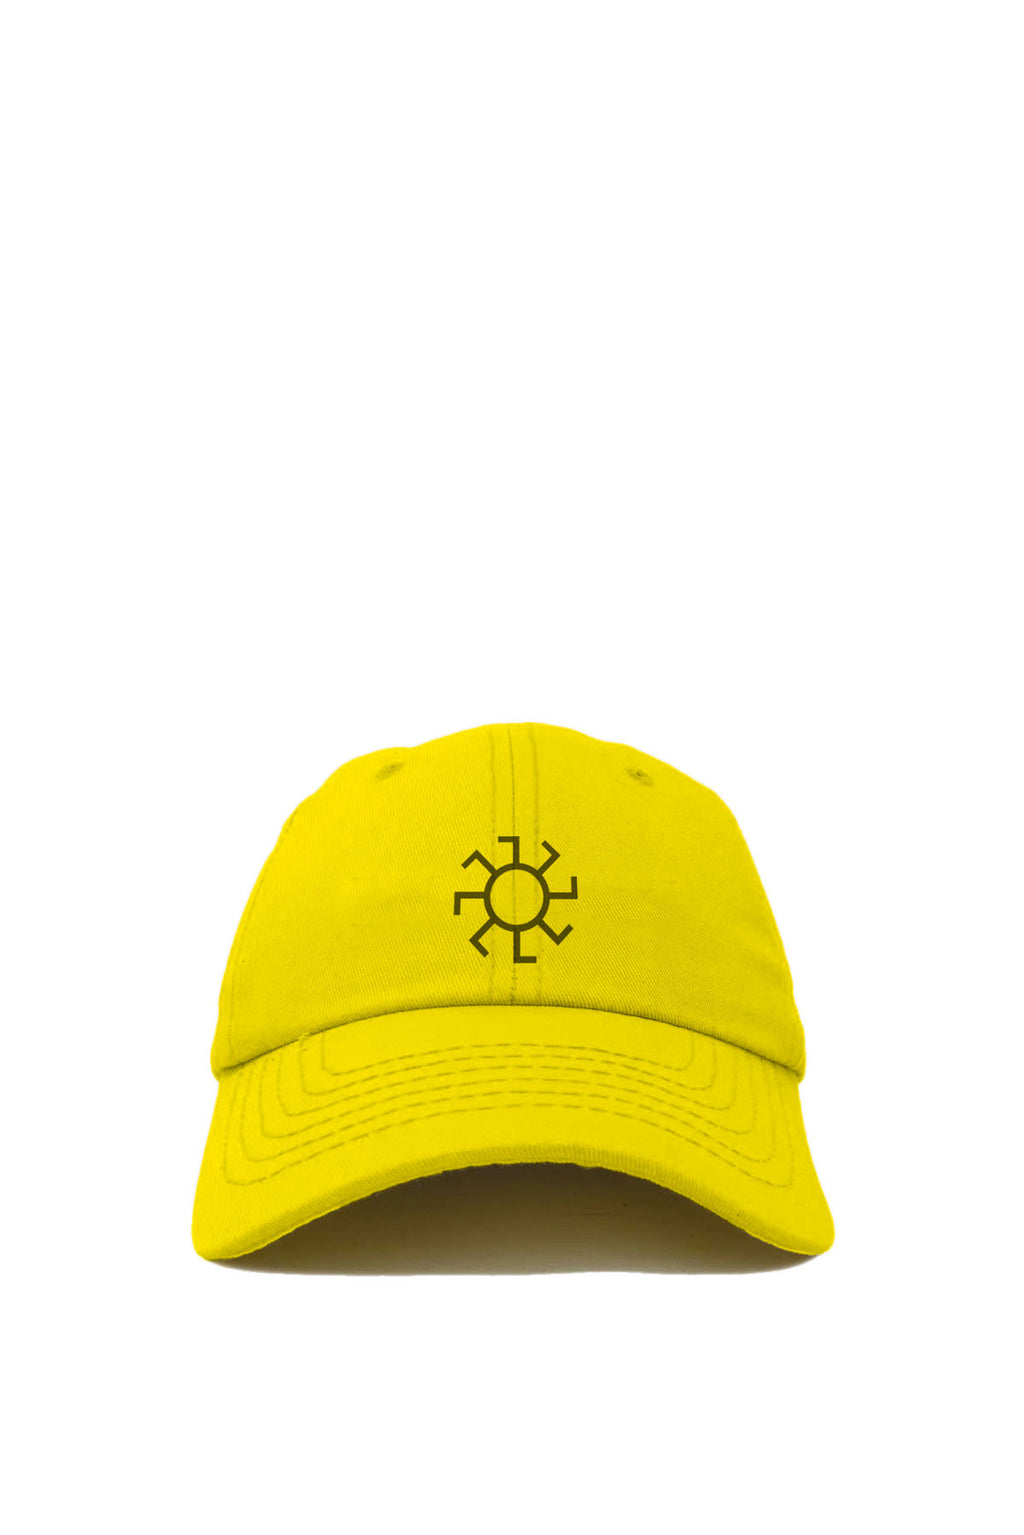 Yellow & Black Sunwheel Embroidered Hat